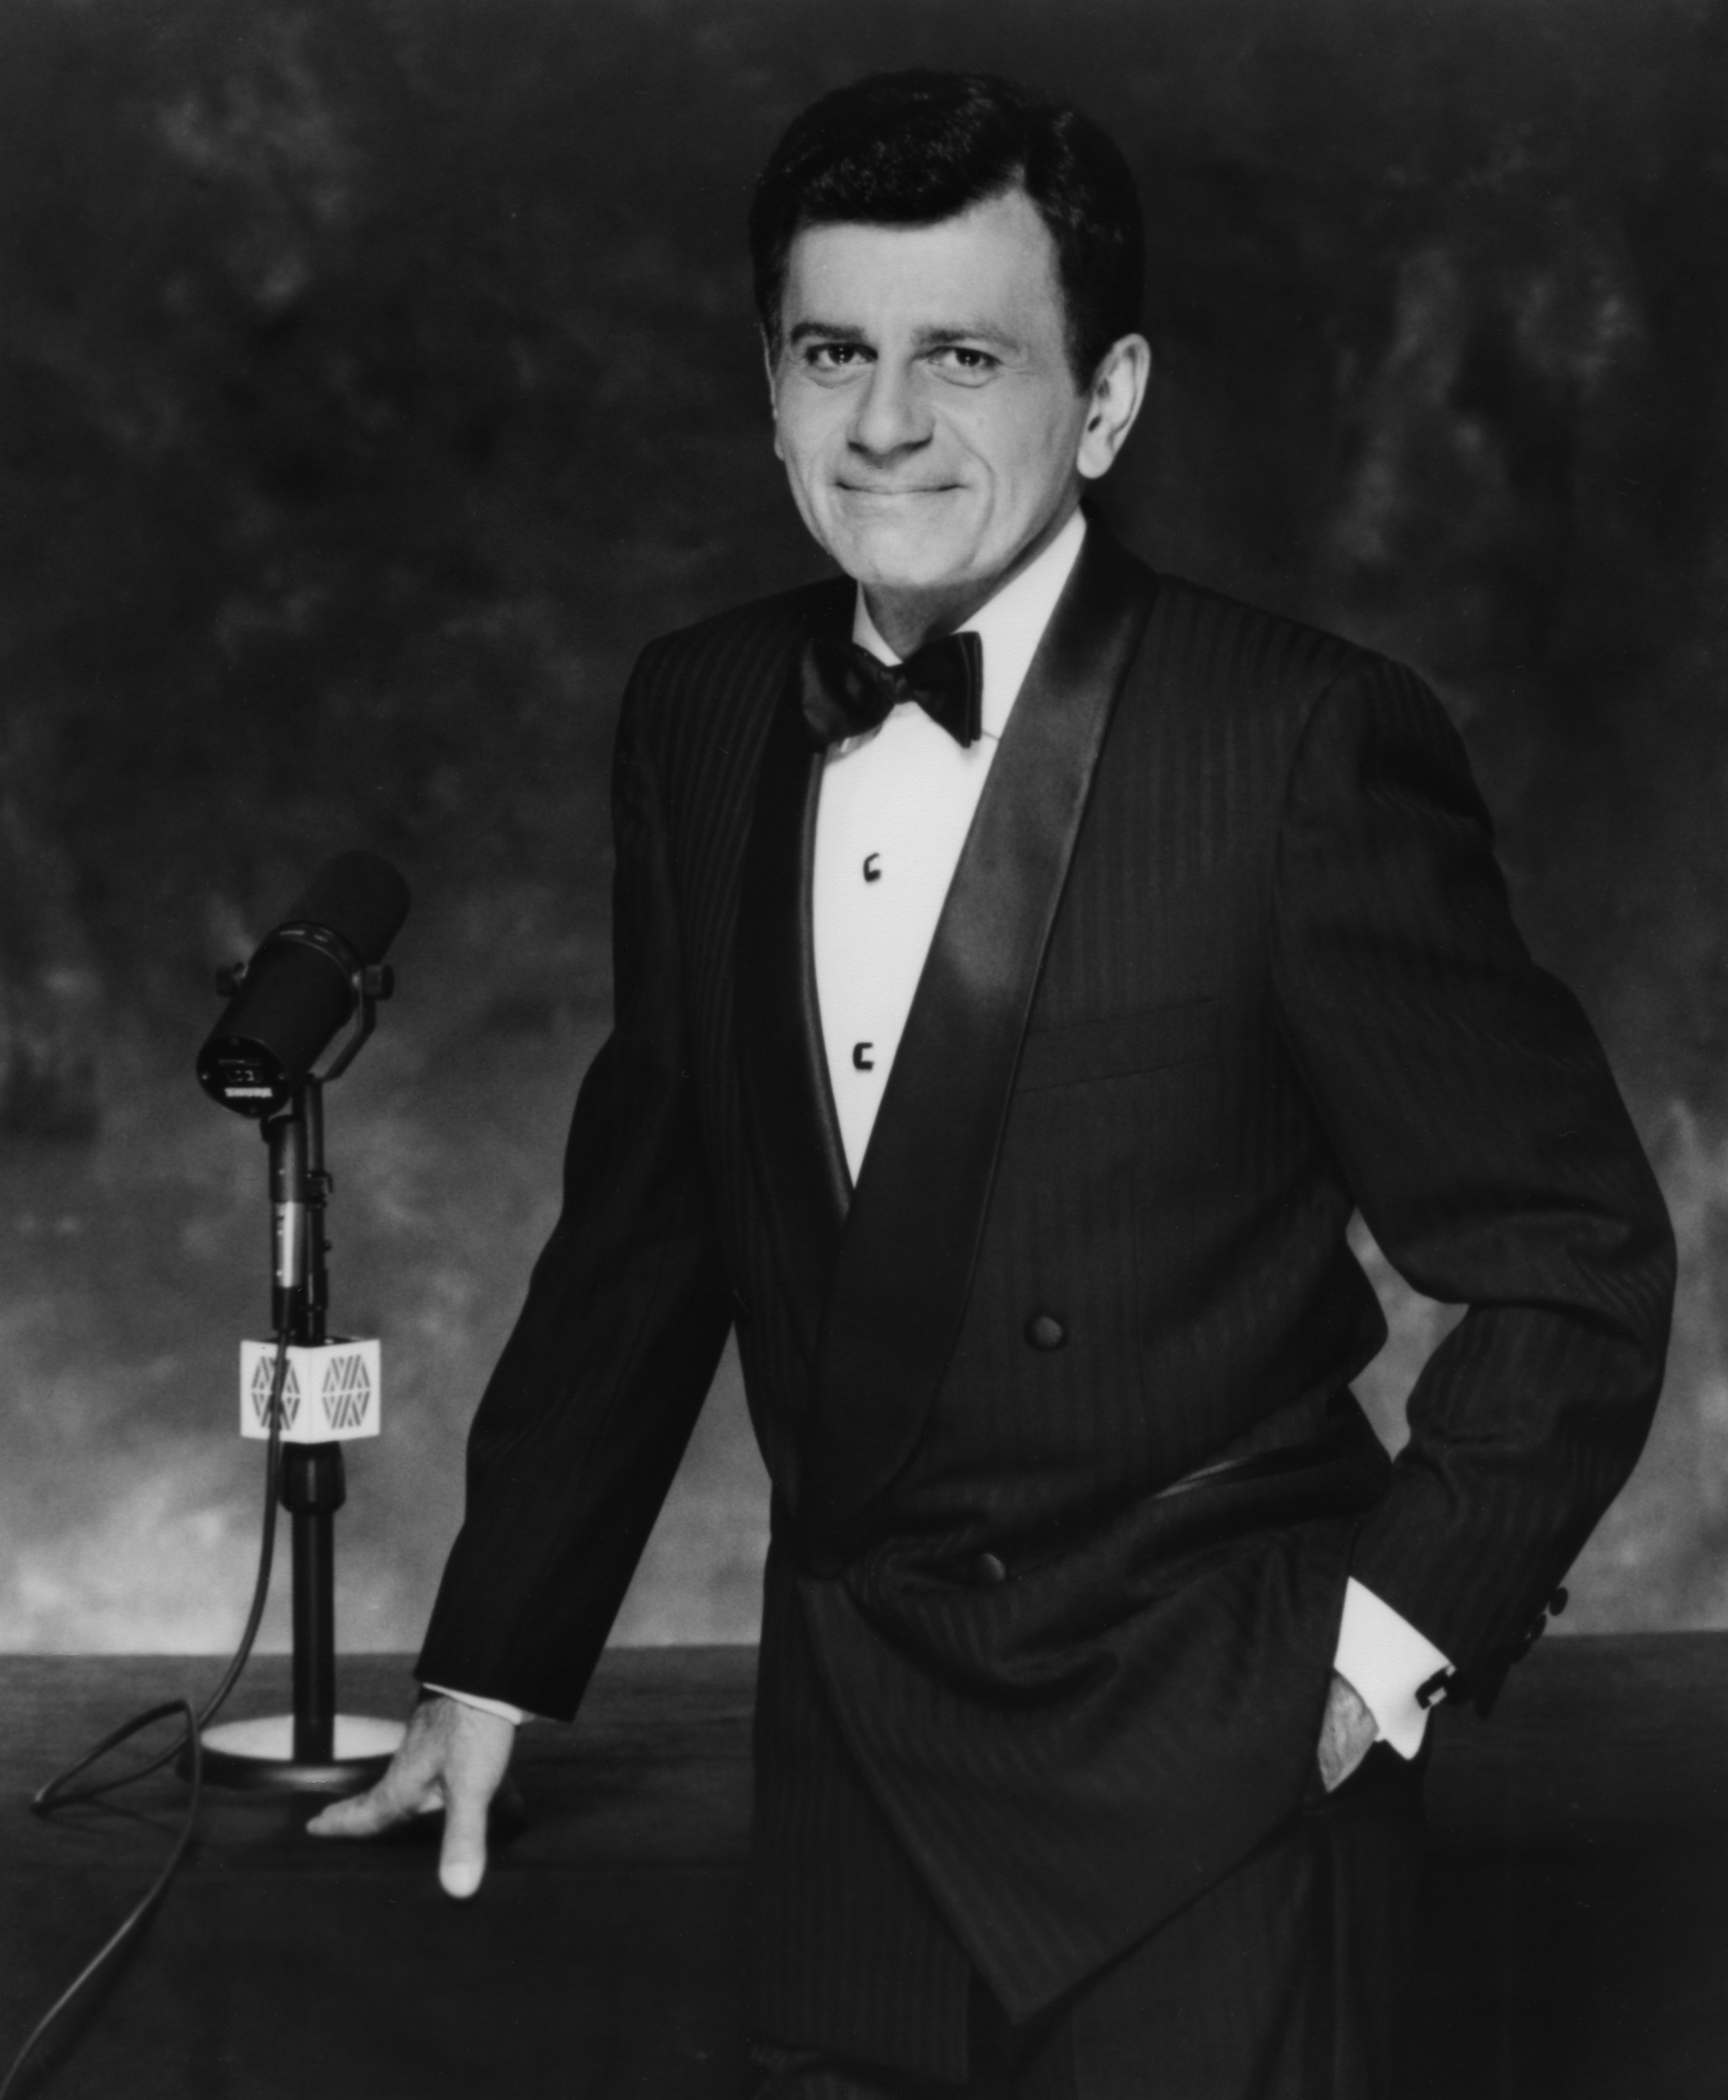 Disc jockey, TV personality and actor Casey Kasem host of 'Casey's Top 40' and 'Casey's Biggest Hits' poses for a Westwood One publicity still circa 1990 in Los Angeles, California.